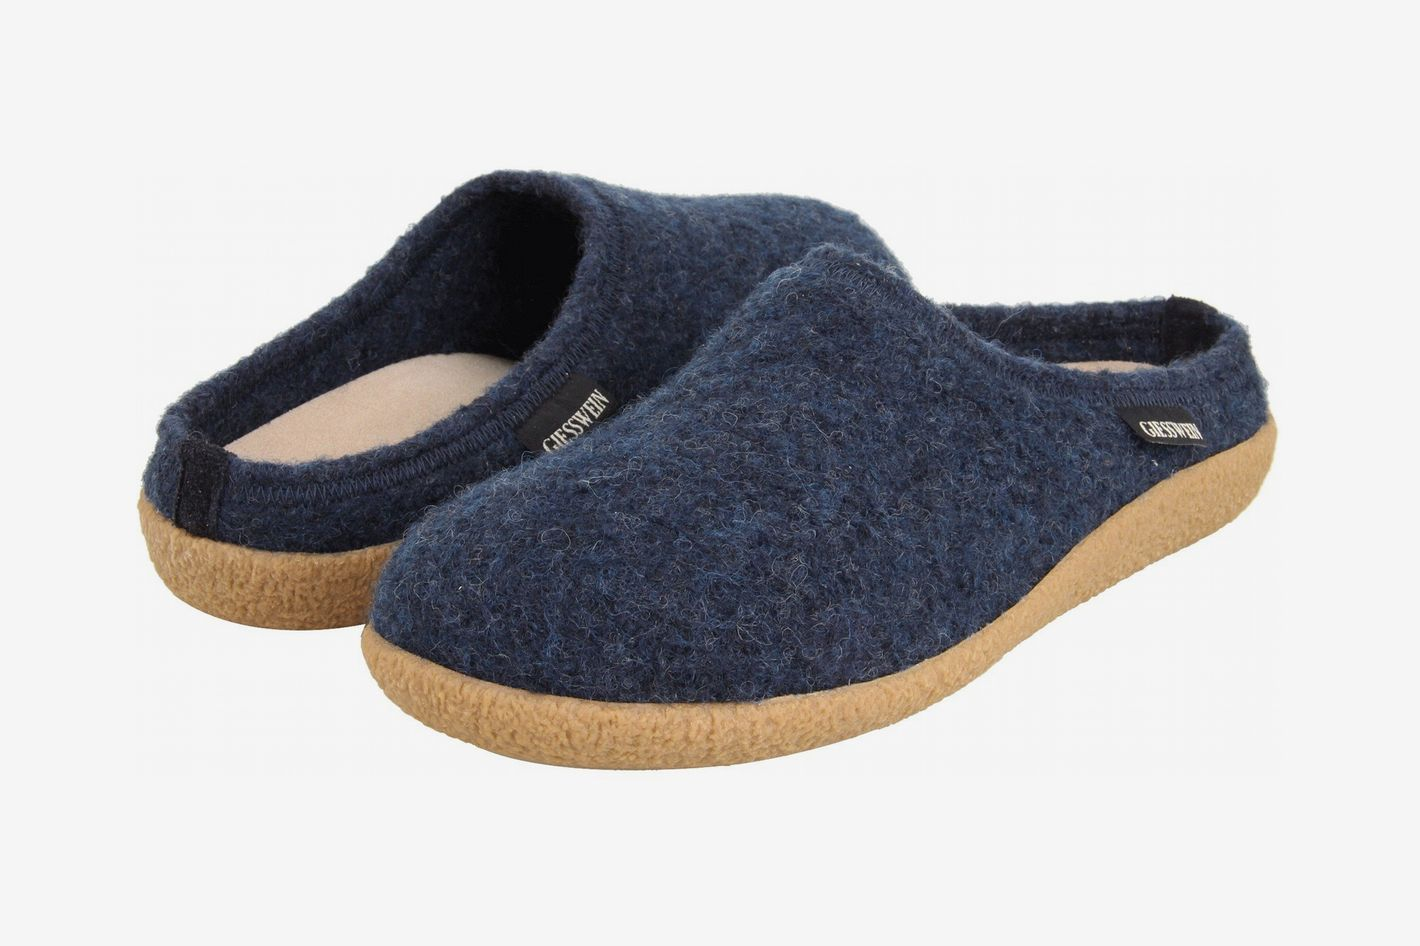 Giesswein Veitsch Slipper